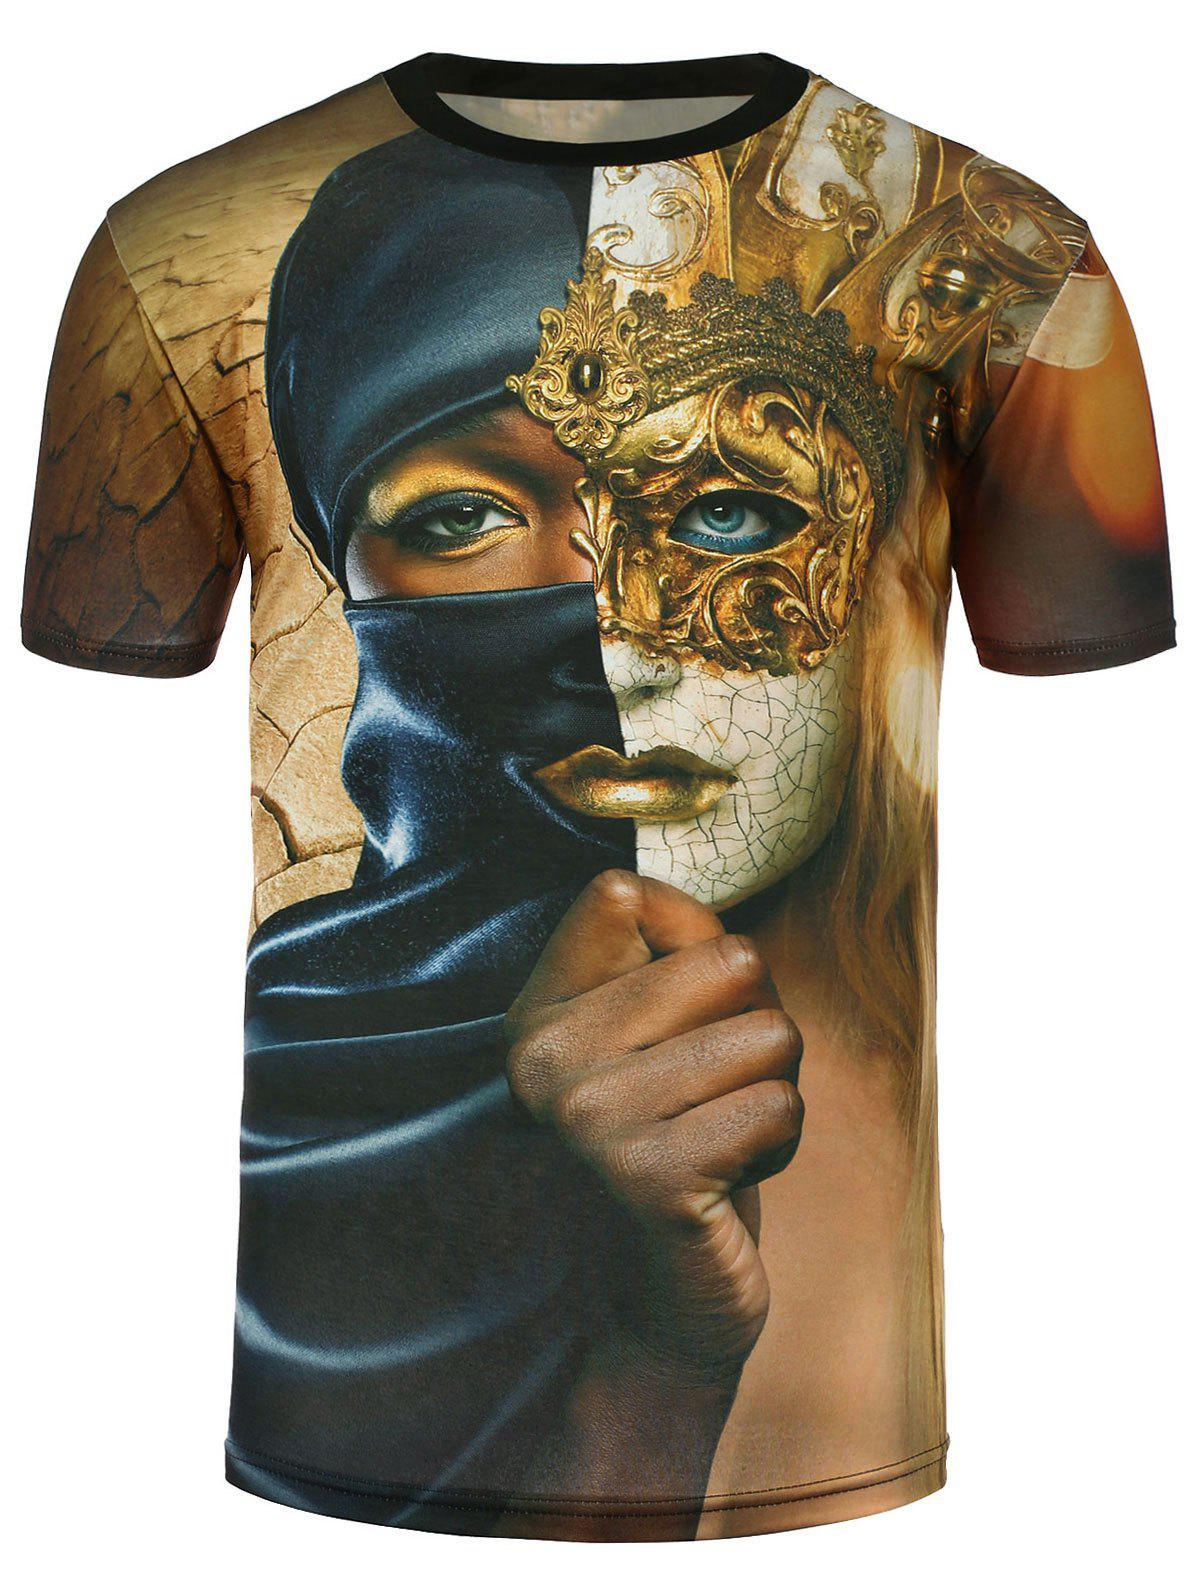 Short Sleeve 3D Mask Woman Print T-Shirt - COLORMIX L